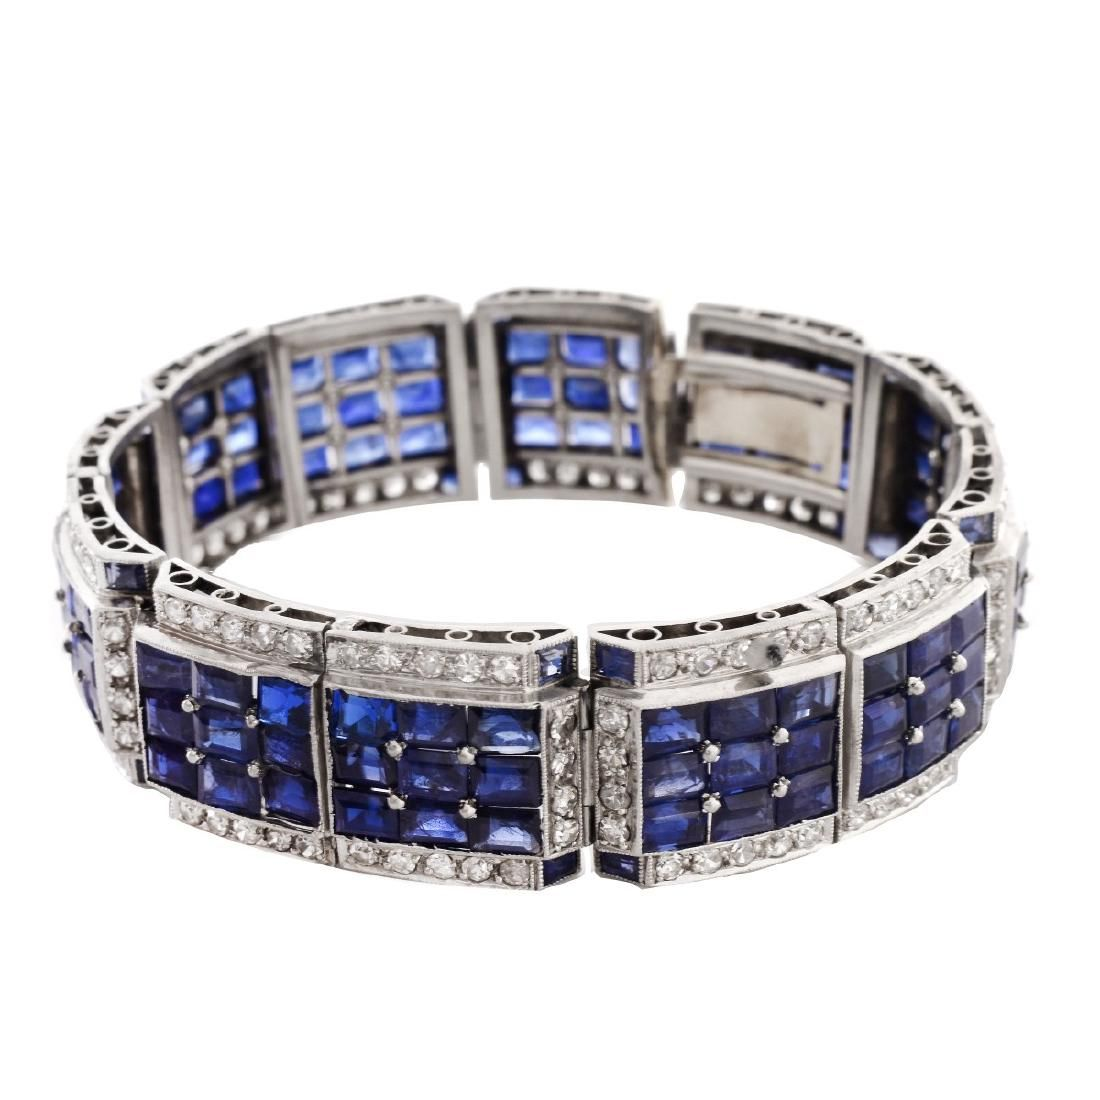 Art Deco Sapphire, Diamond and Platinum Bracelet